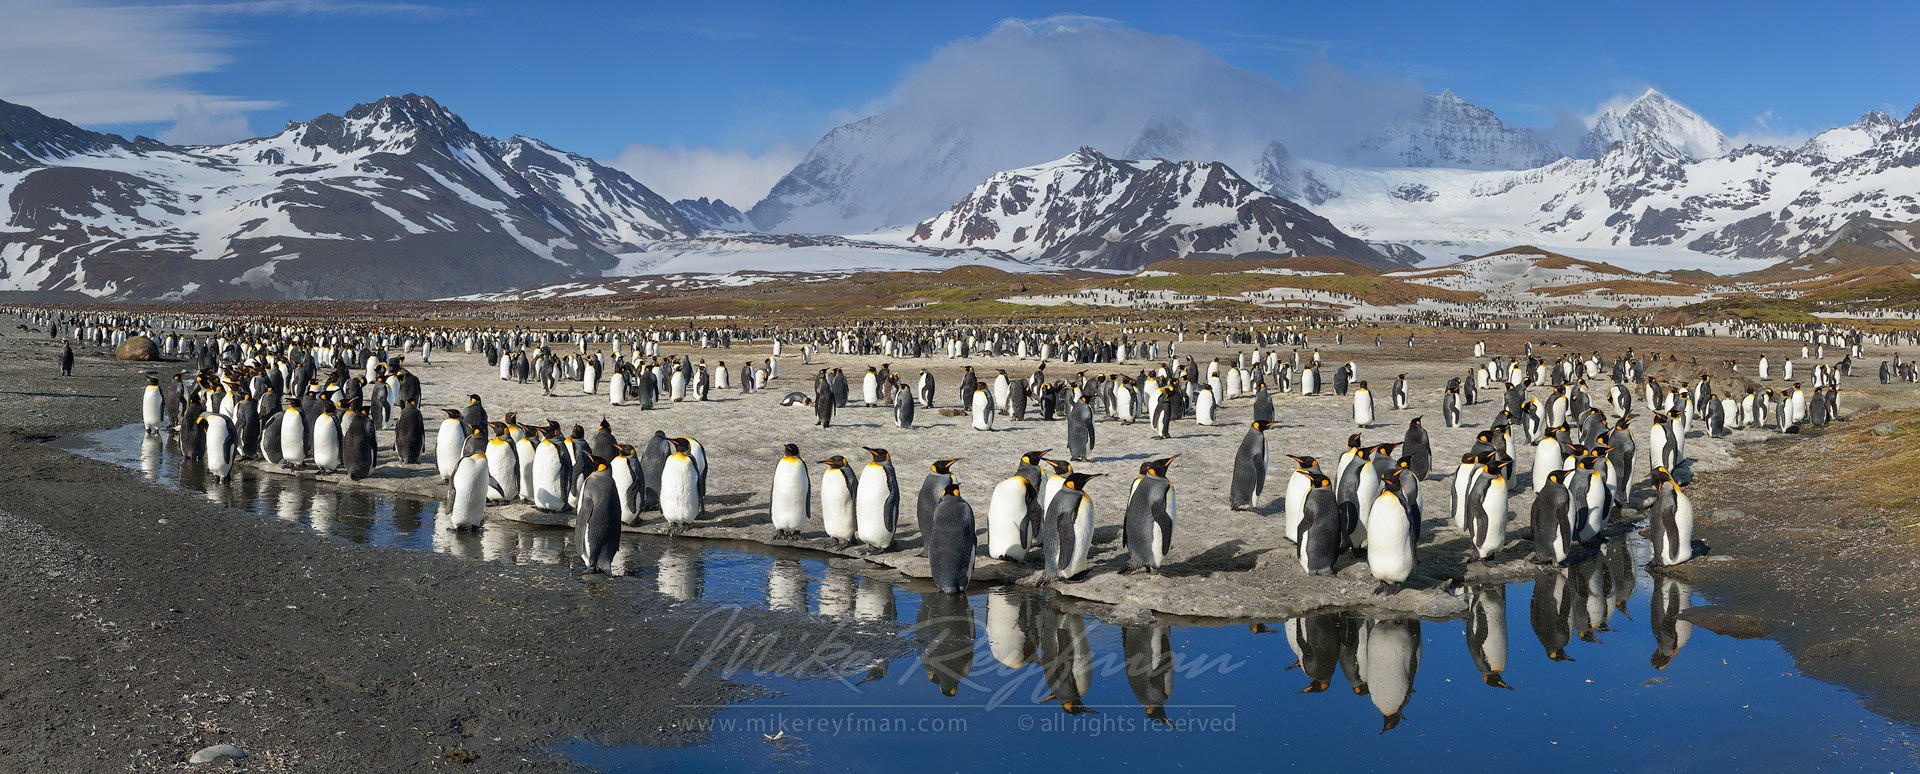 Terra Penguinia. King Penguin (Aptenodytes patagonicus) Colony, Salisbury Plain, South Georgia, Sub-Antarctic. Panoramic